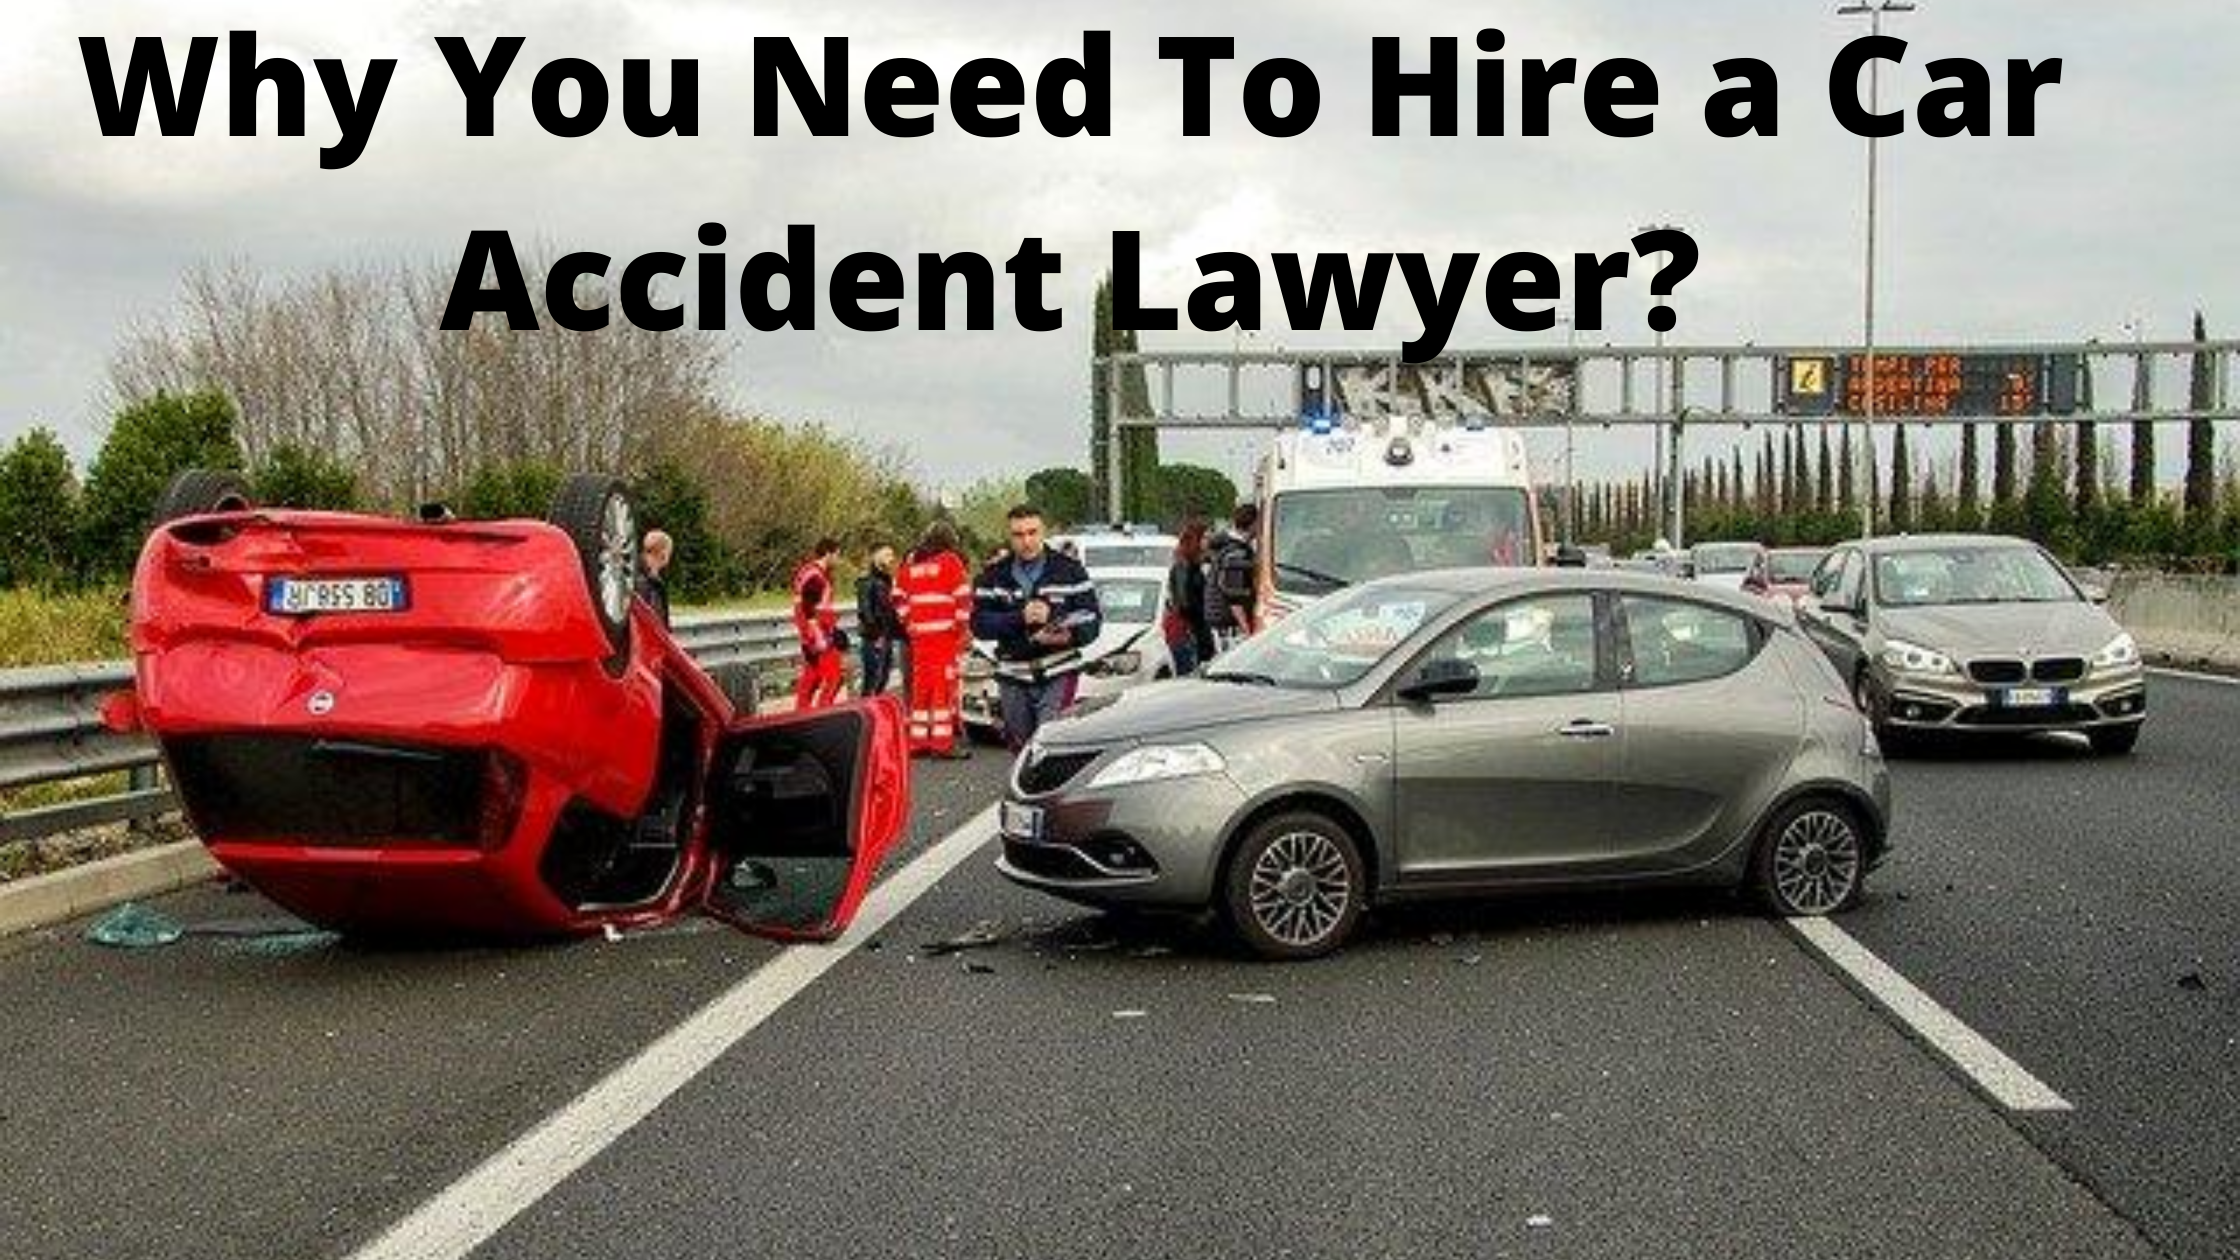 Why You Need To Hire a Car Accident Lawyer